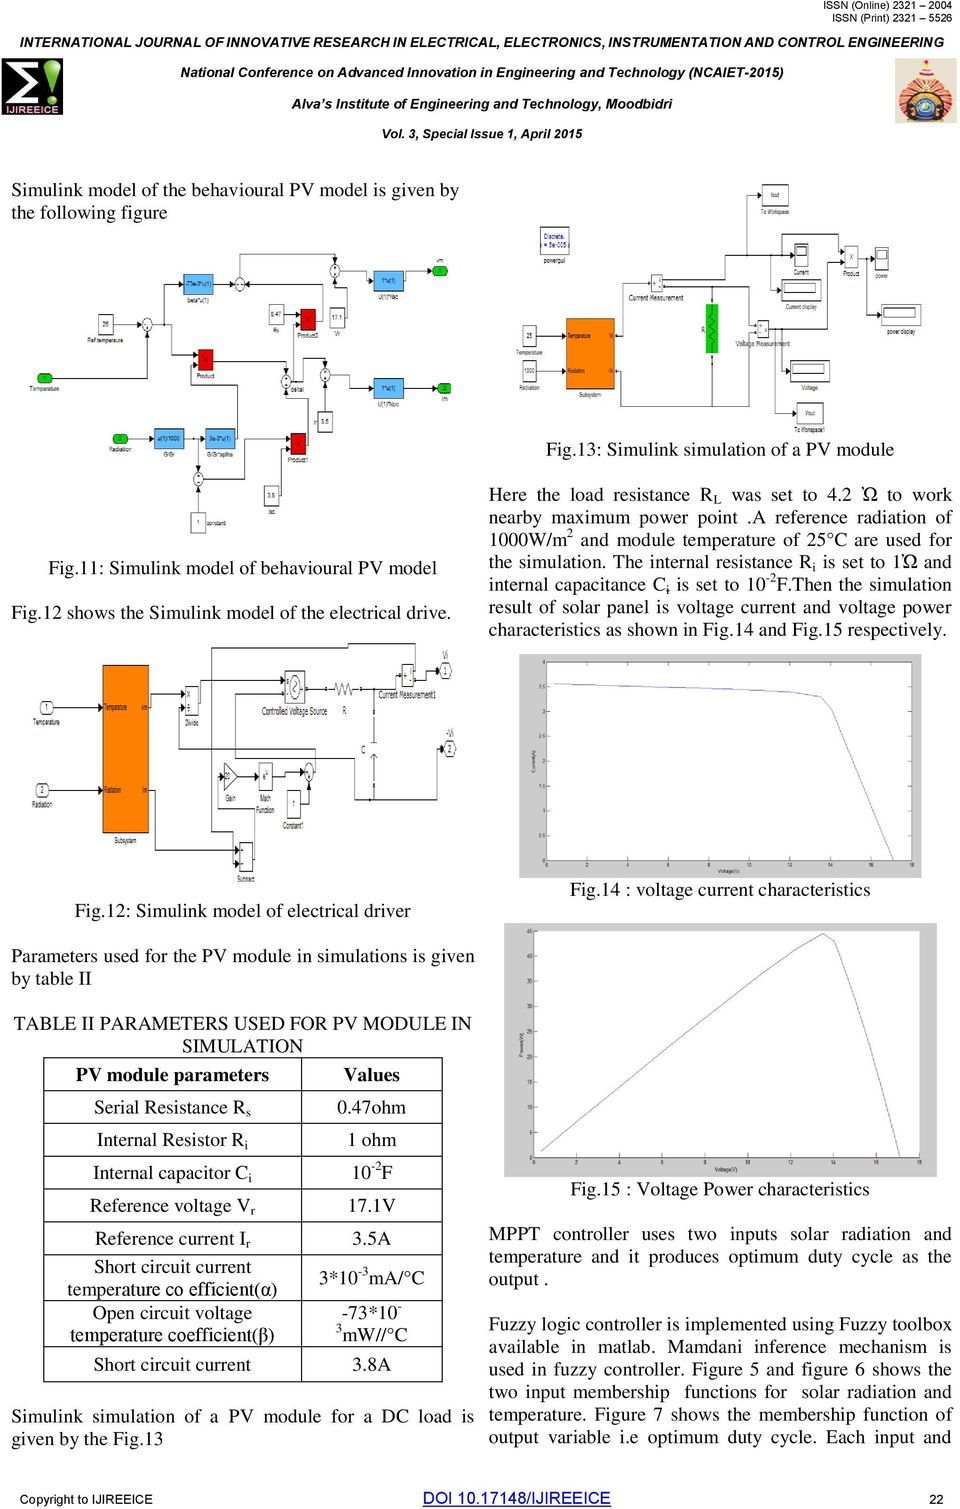 Simulation Of Mppt Using Fuzzy Logic Controller For Ac Drive Pdf Electrical Diagram Simulator A Reference Radiation 1000w M 2 And Module Temperature 25 C Are Used